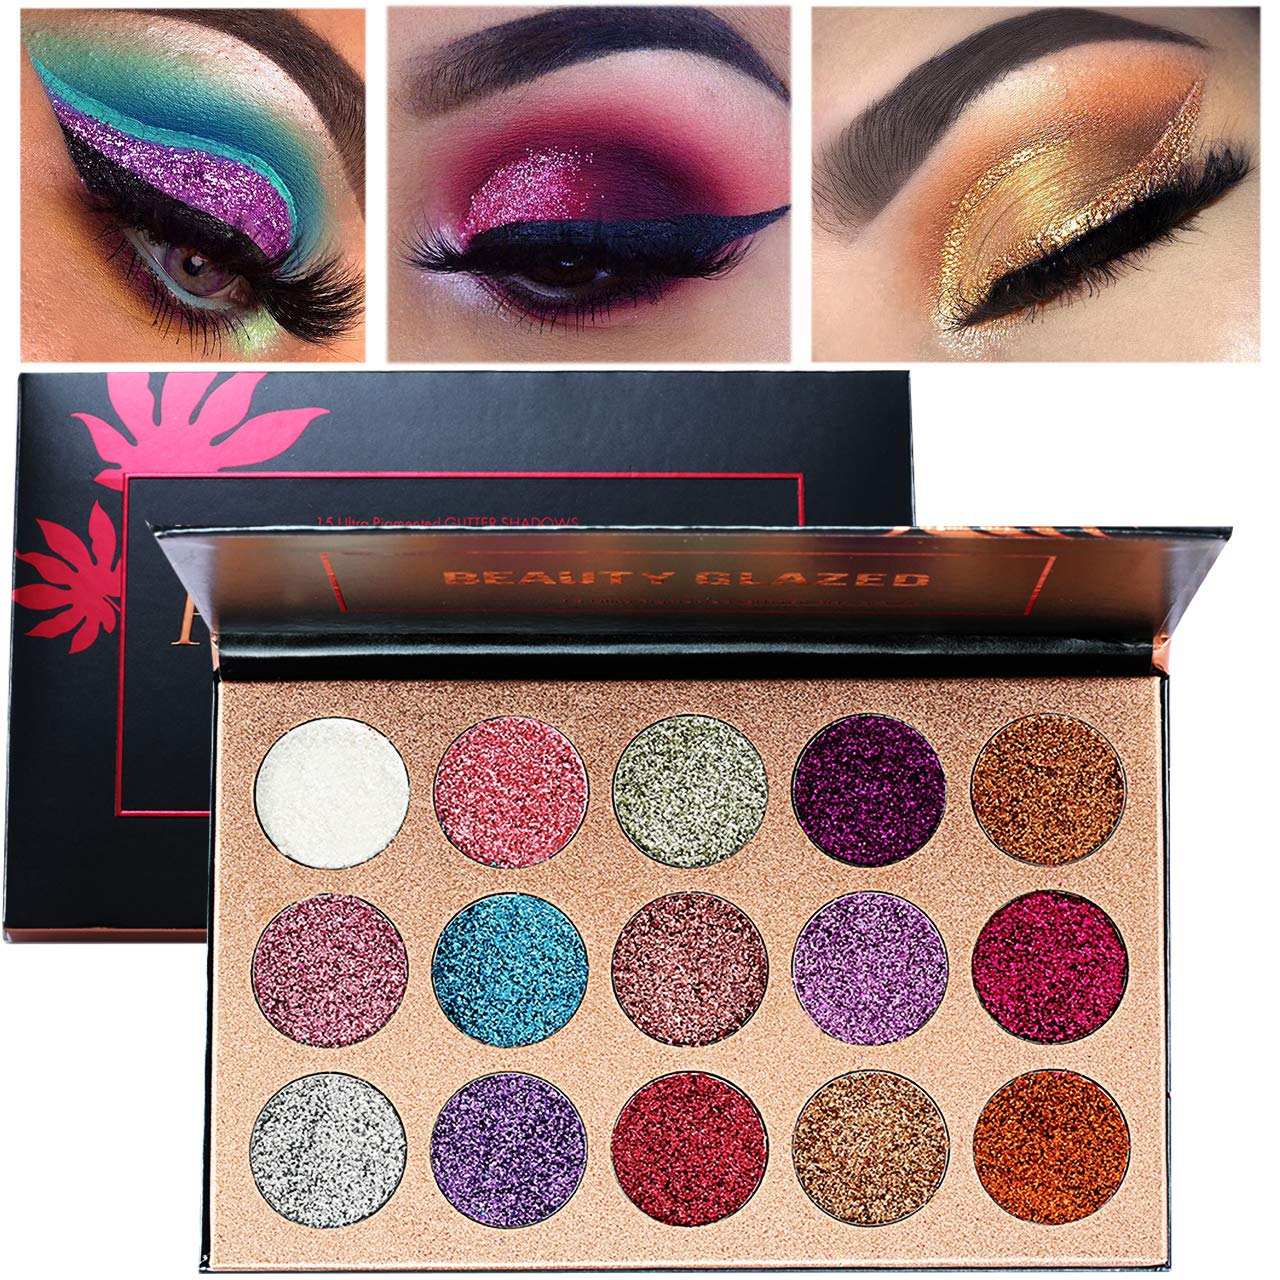 Review of Beauty Glazed Ultra Pigmented Glitters, Palette Creamy Glitter Pro Makeup